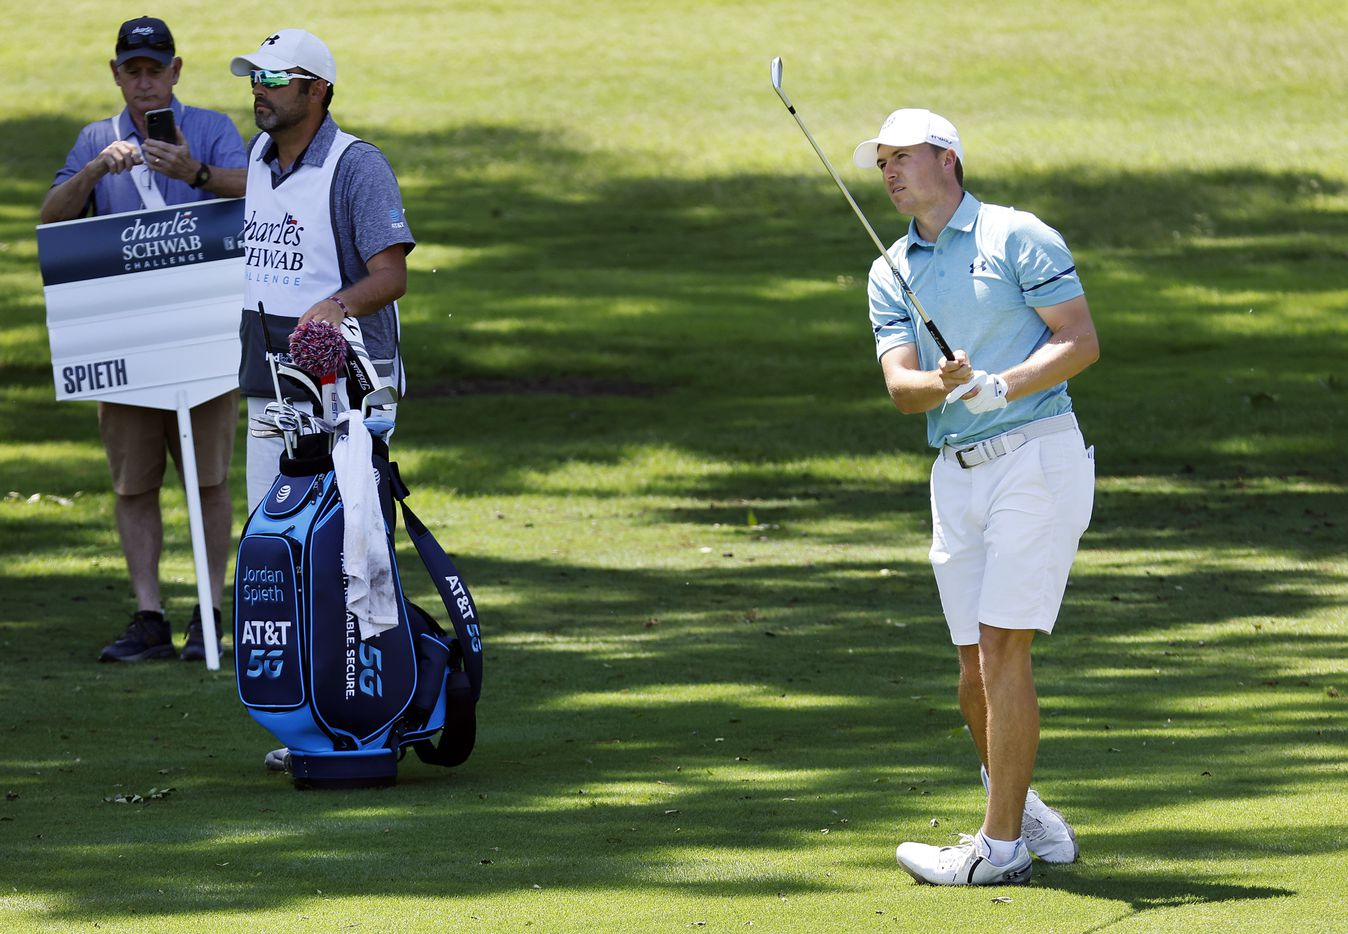 Golfer Jordan Spieth watches his shot from the No. 11 fairway during his Charles Schwab Challenge Colonial Pro-Am round at the Colonial Country Club in Fort Worth, Wednesday, May 26, 2021. (Tom Fox/The Dallas Morning News)